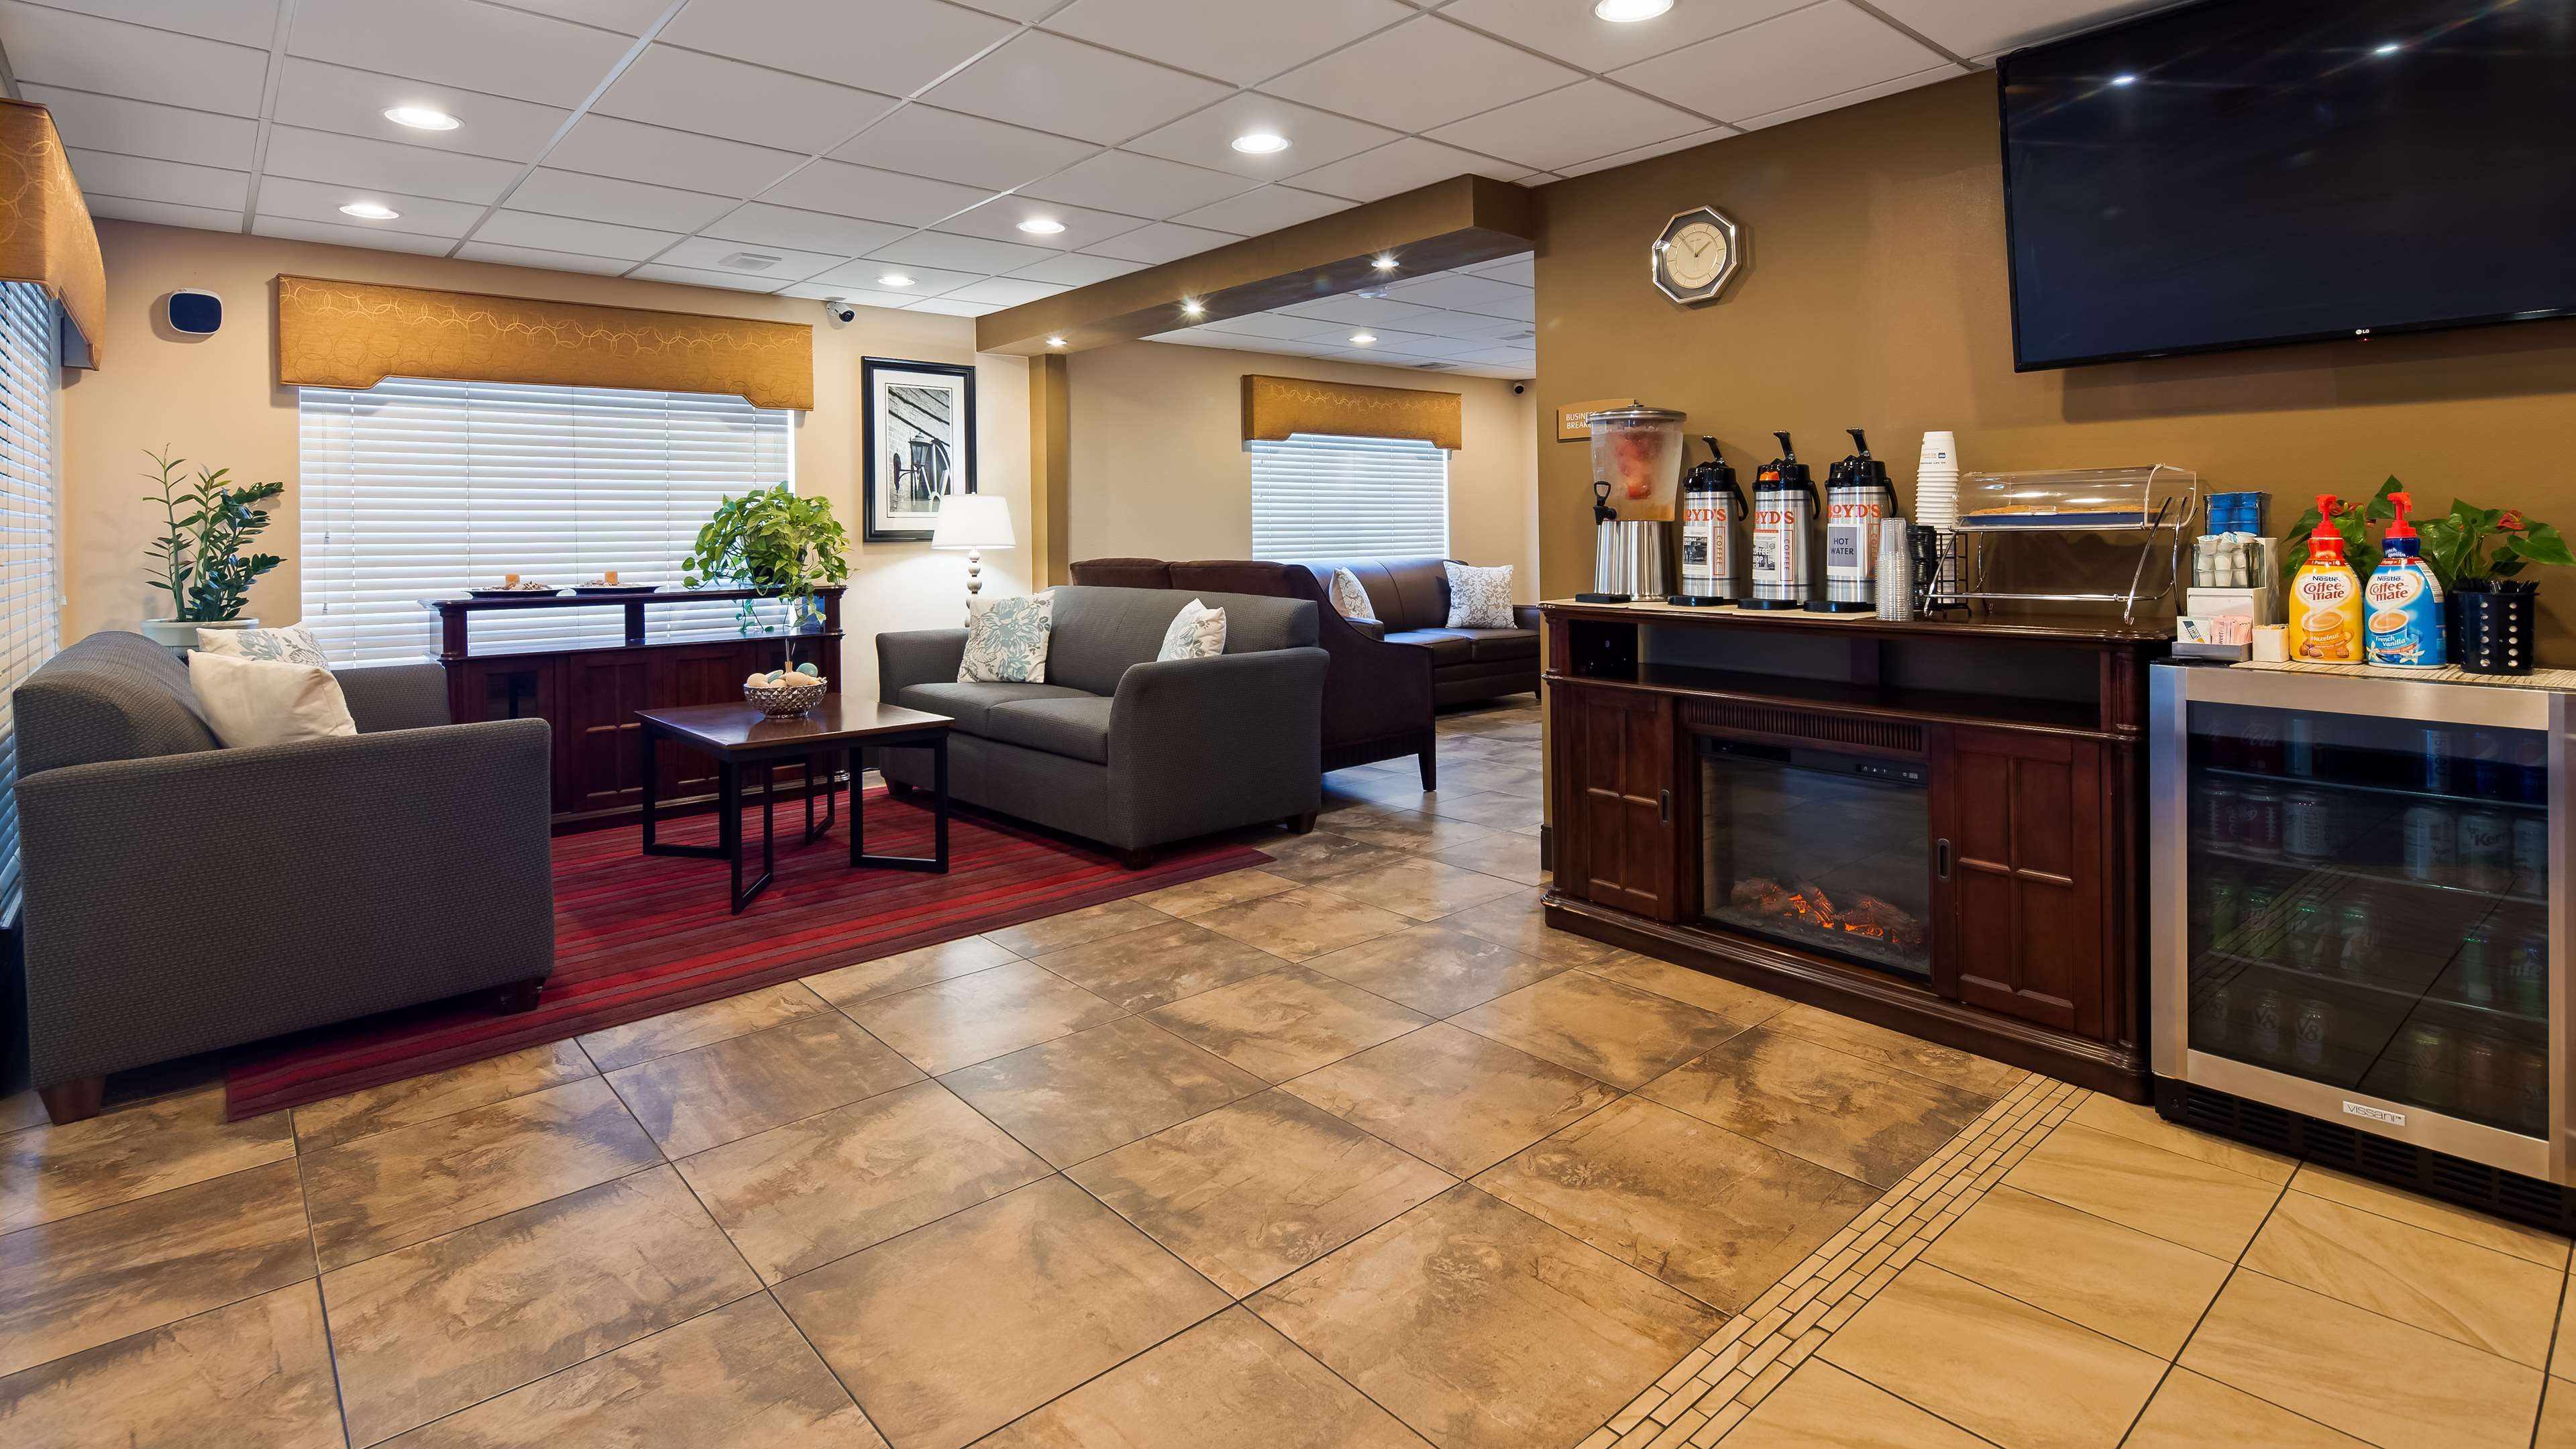 Best Western Inn & Suites image 34